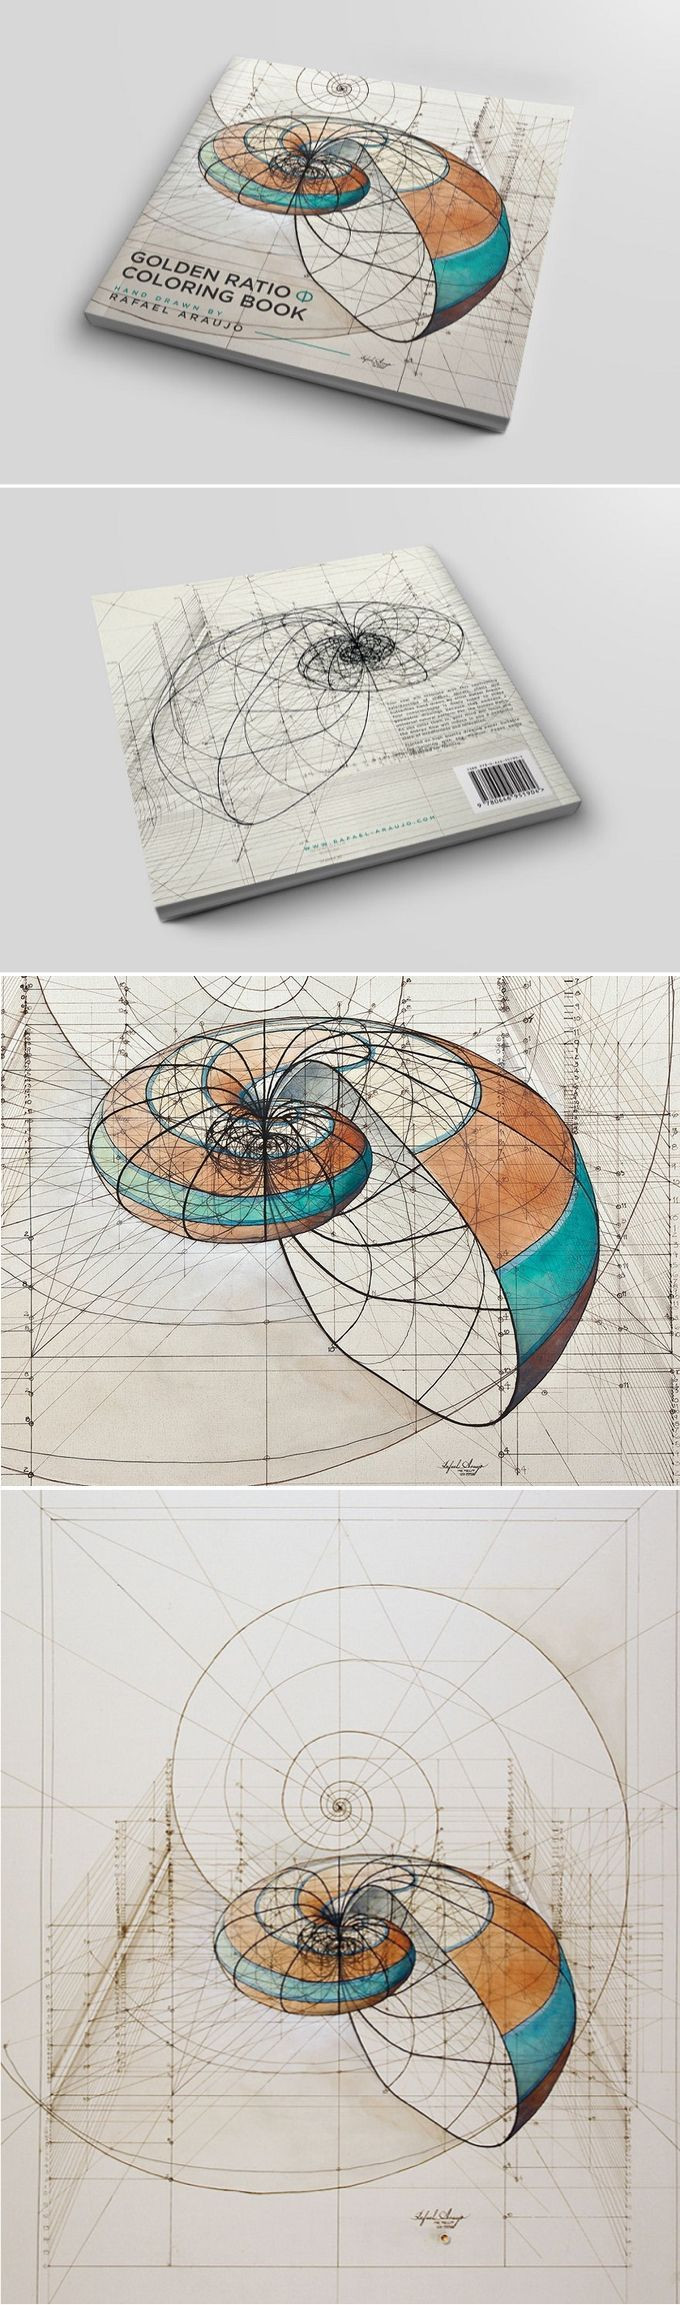 otterson vase painting print of 591 best art illustration images on pinterest character design inside adult coloring book featuring hand drawn golden ratio illustrations